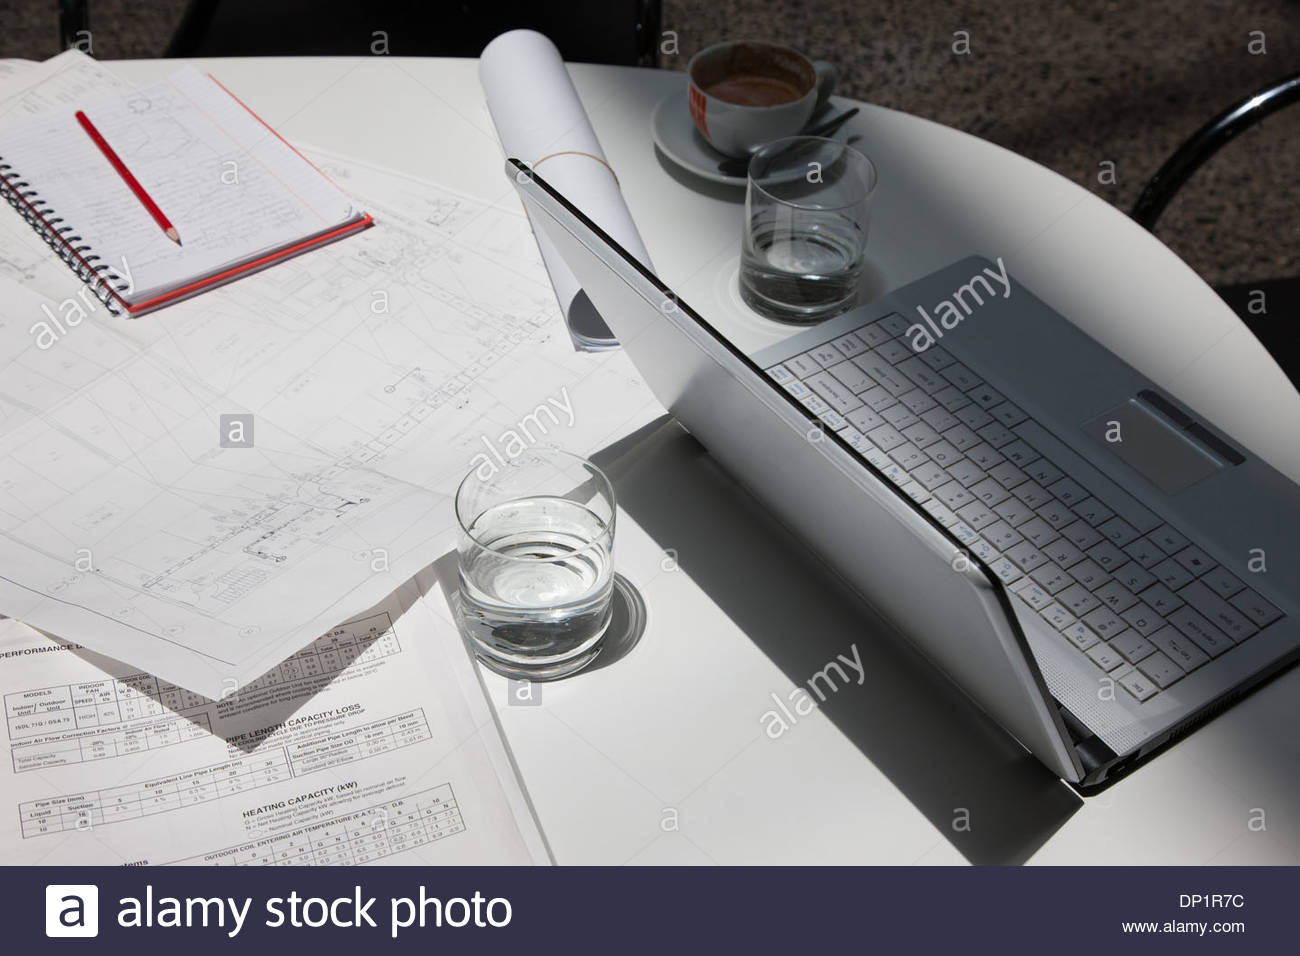 Directly above paperwork, coffee, laptops and notebooks on conference table - Stock Image